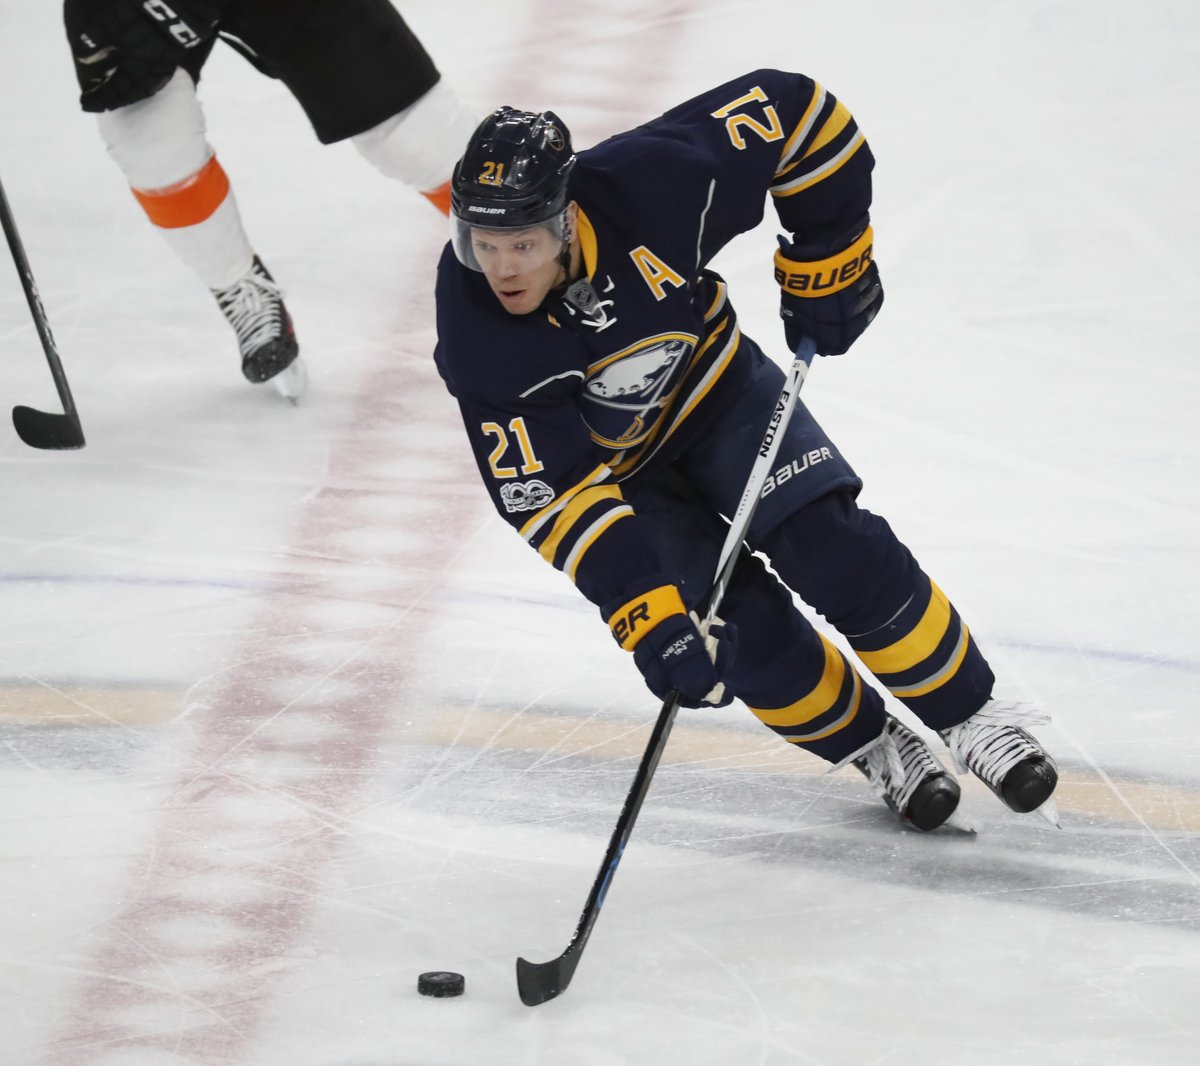 Kyle Okposo leads the Sabres with 12 goals. (Harry Scull Jr./Buffalo News)